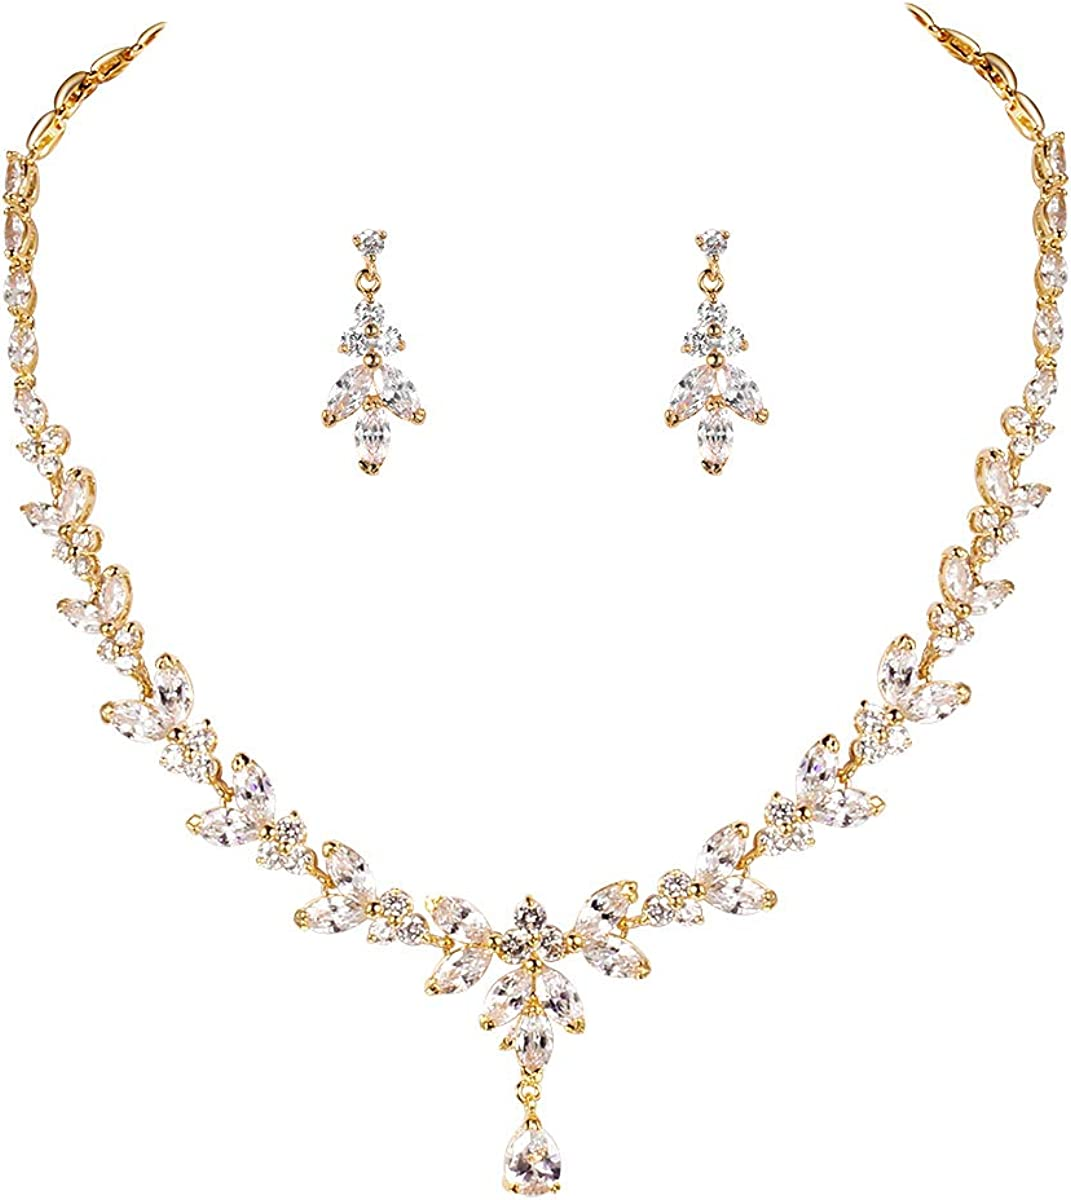 "CUBIC ZIRCONIA MARQUISE SHAPE 17"" NECKLACE IN GOLD PLATED WITH EARRINGS"